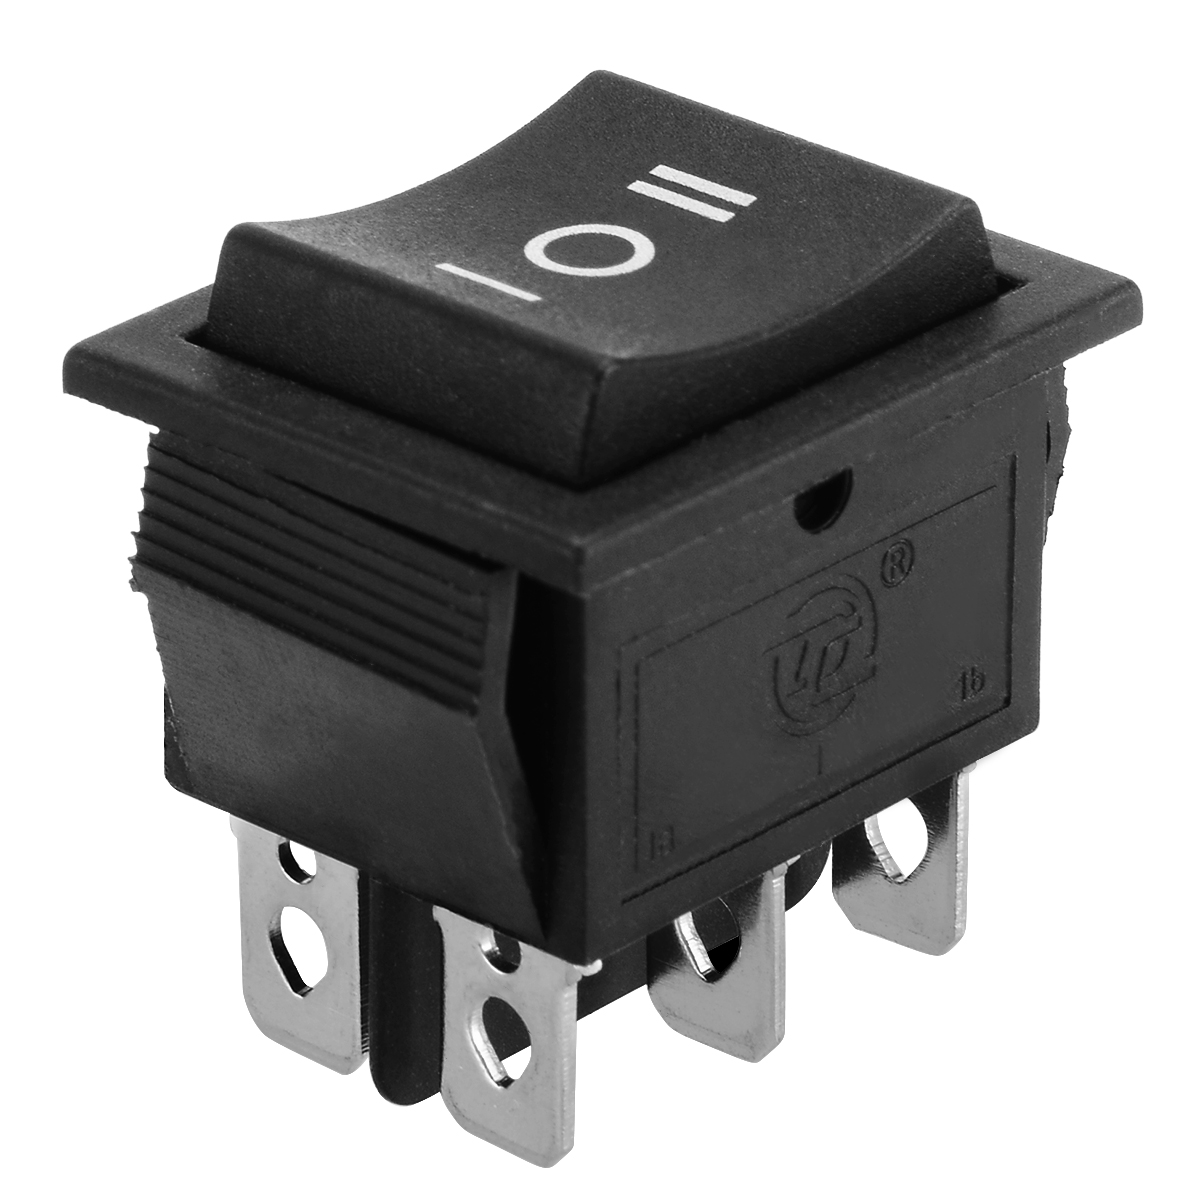 1pc 6 Pin 3 Position Hoist Boat ON OFF ON Momentary Rocker Switch DPDT 16A 250V Mayitr 32 31 25mm Mayitr in Switches from Lights Lighting